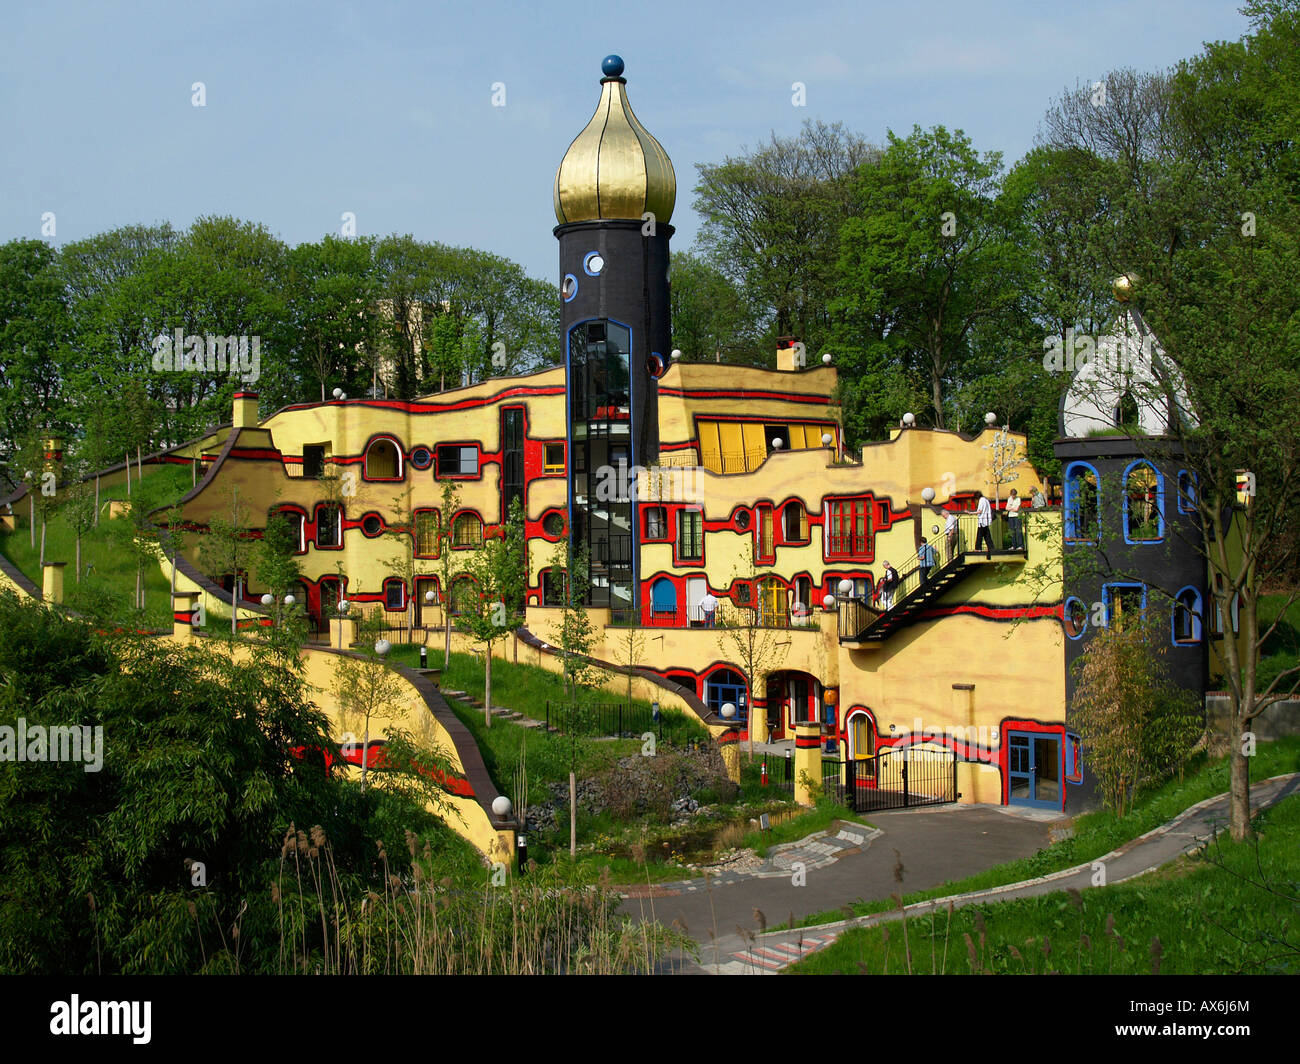 tourists at multicolored buildings in park grugapark essen germany stock photo royalty free. Black Bedroom Furniture Sets. Home Design Ideas